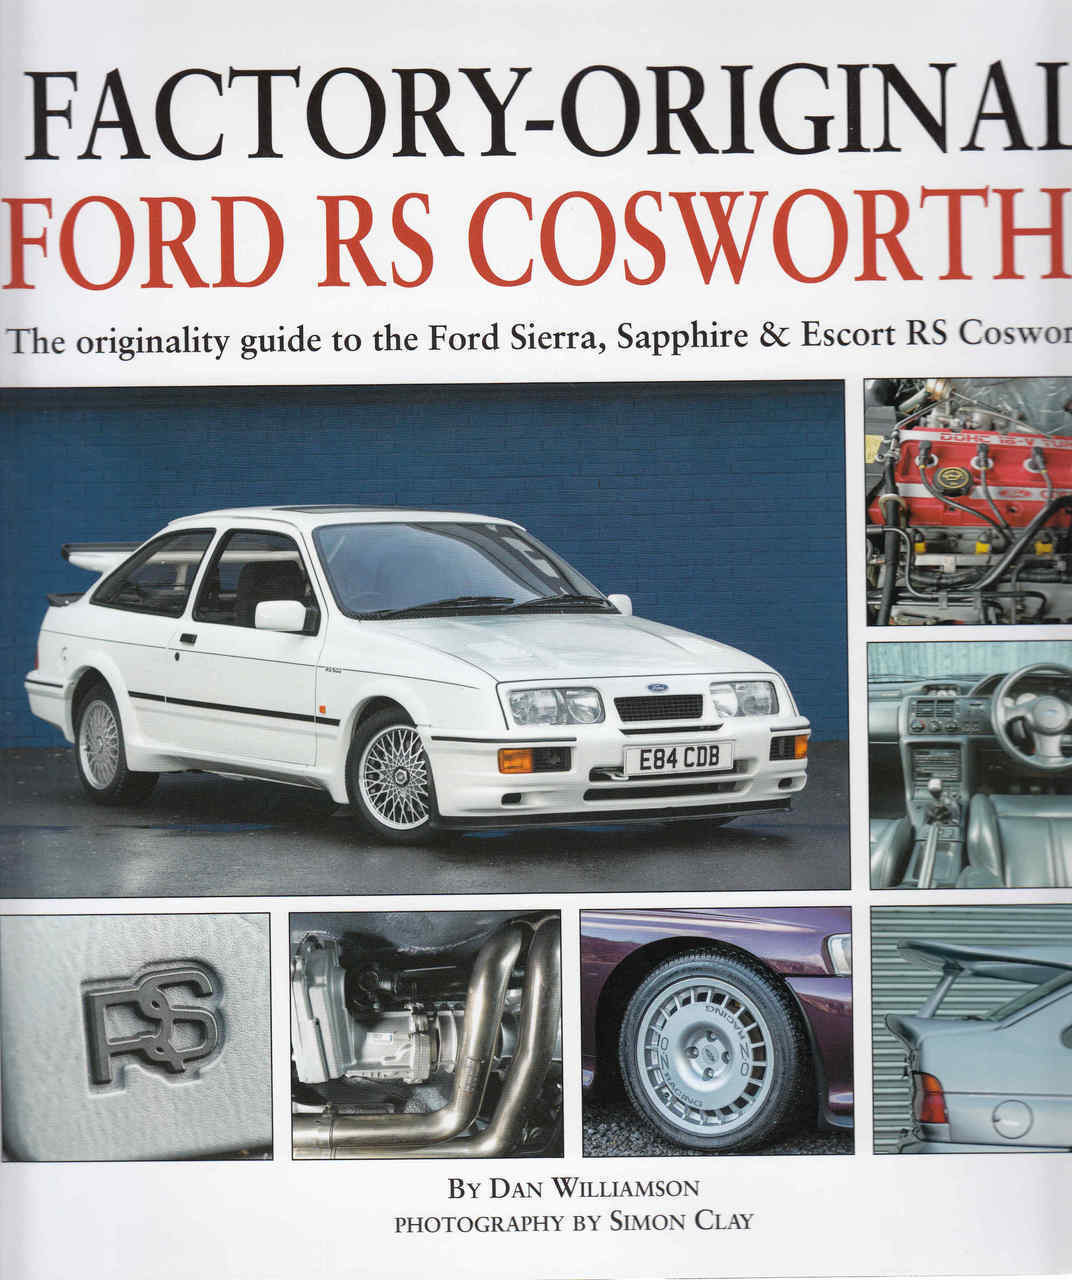 Factory-Original Ford RS Cosworths - The Originality Guide To The Ford  Sierra, Sapphire & Escort RS